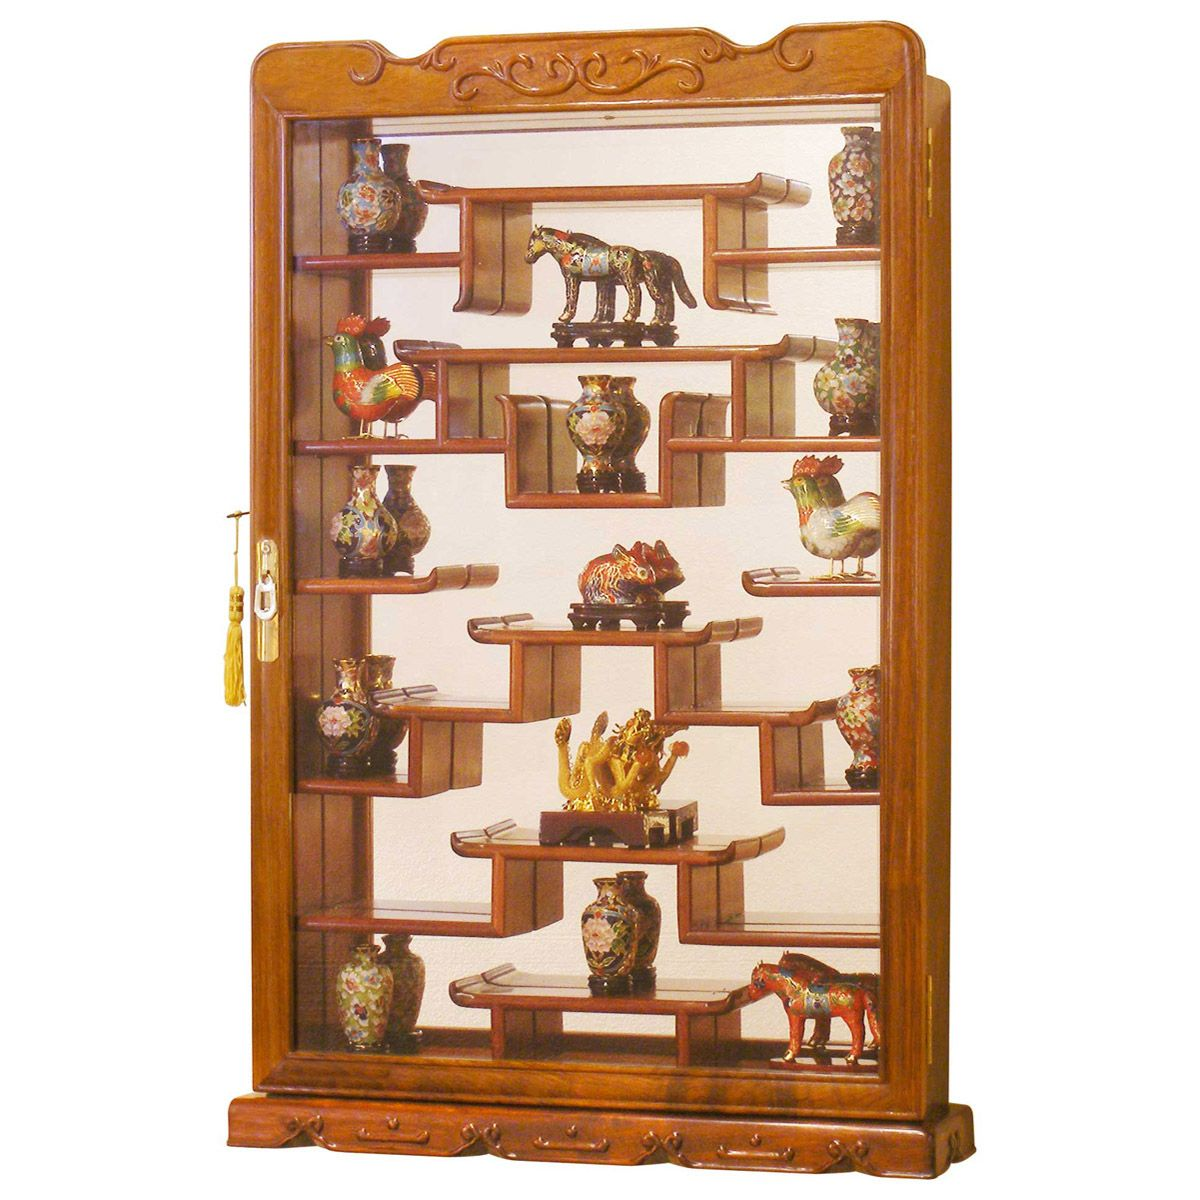 Glass Shelves Kitchen Cabinets: Rosewood Wall Curio Display Cabinet